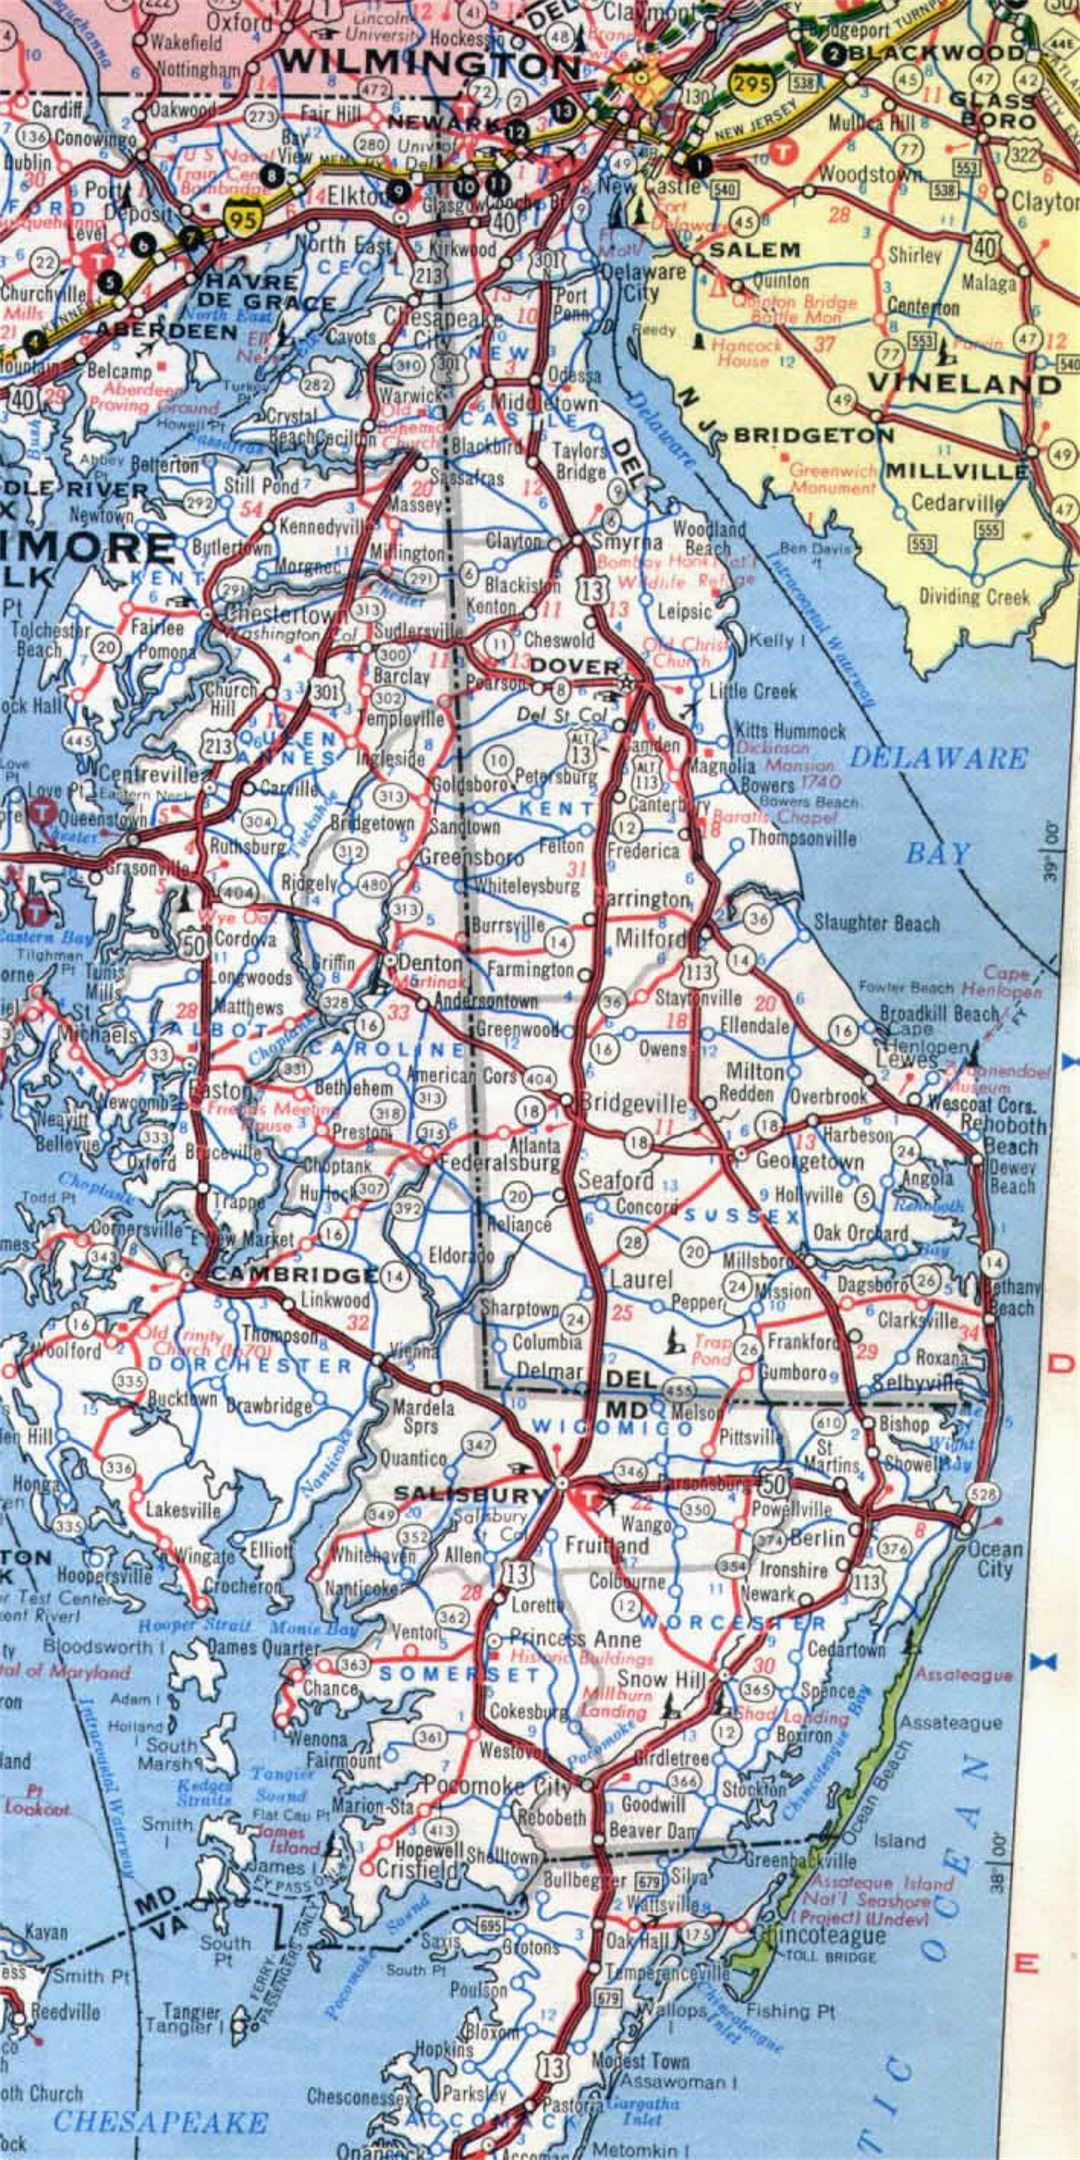 Roads and highways map of Delaware state - 1971 | Delaware